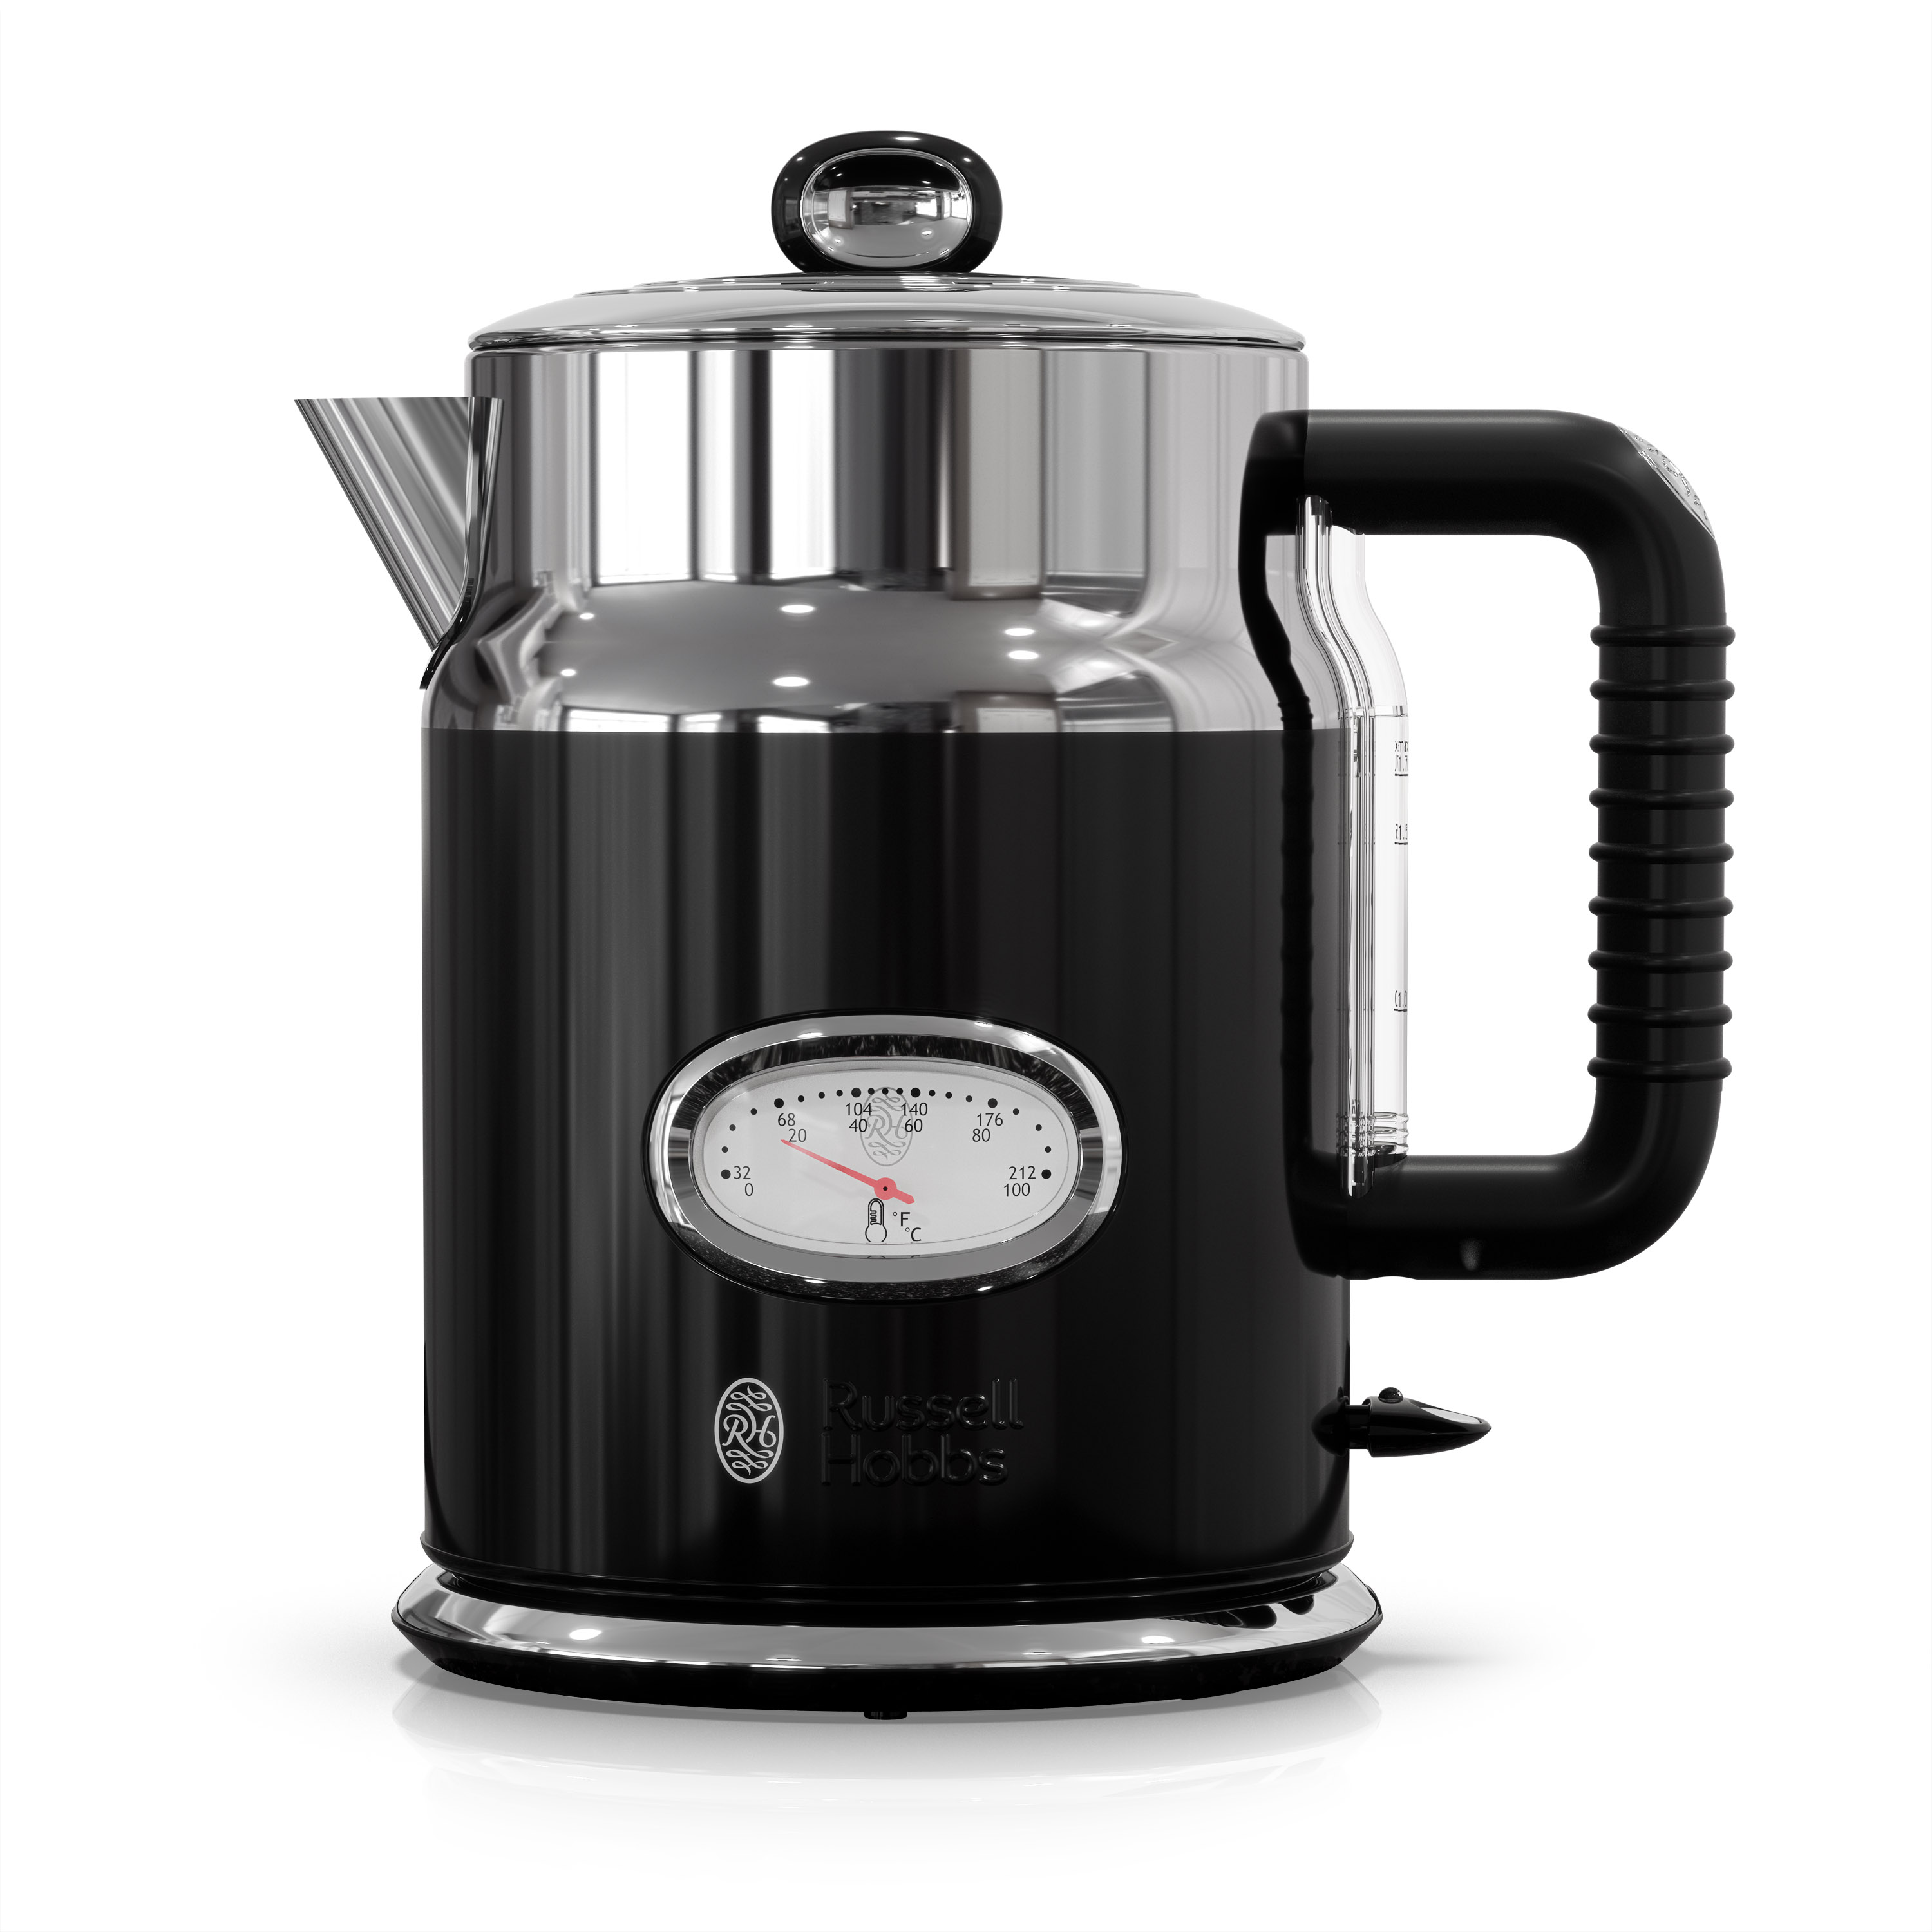 Old fashioned looking electric kettle 10 Best Electric Kettles Apartment Therapy